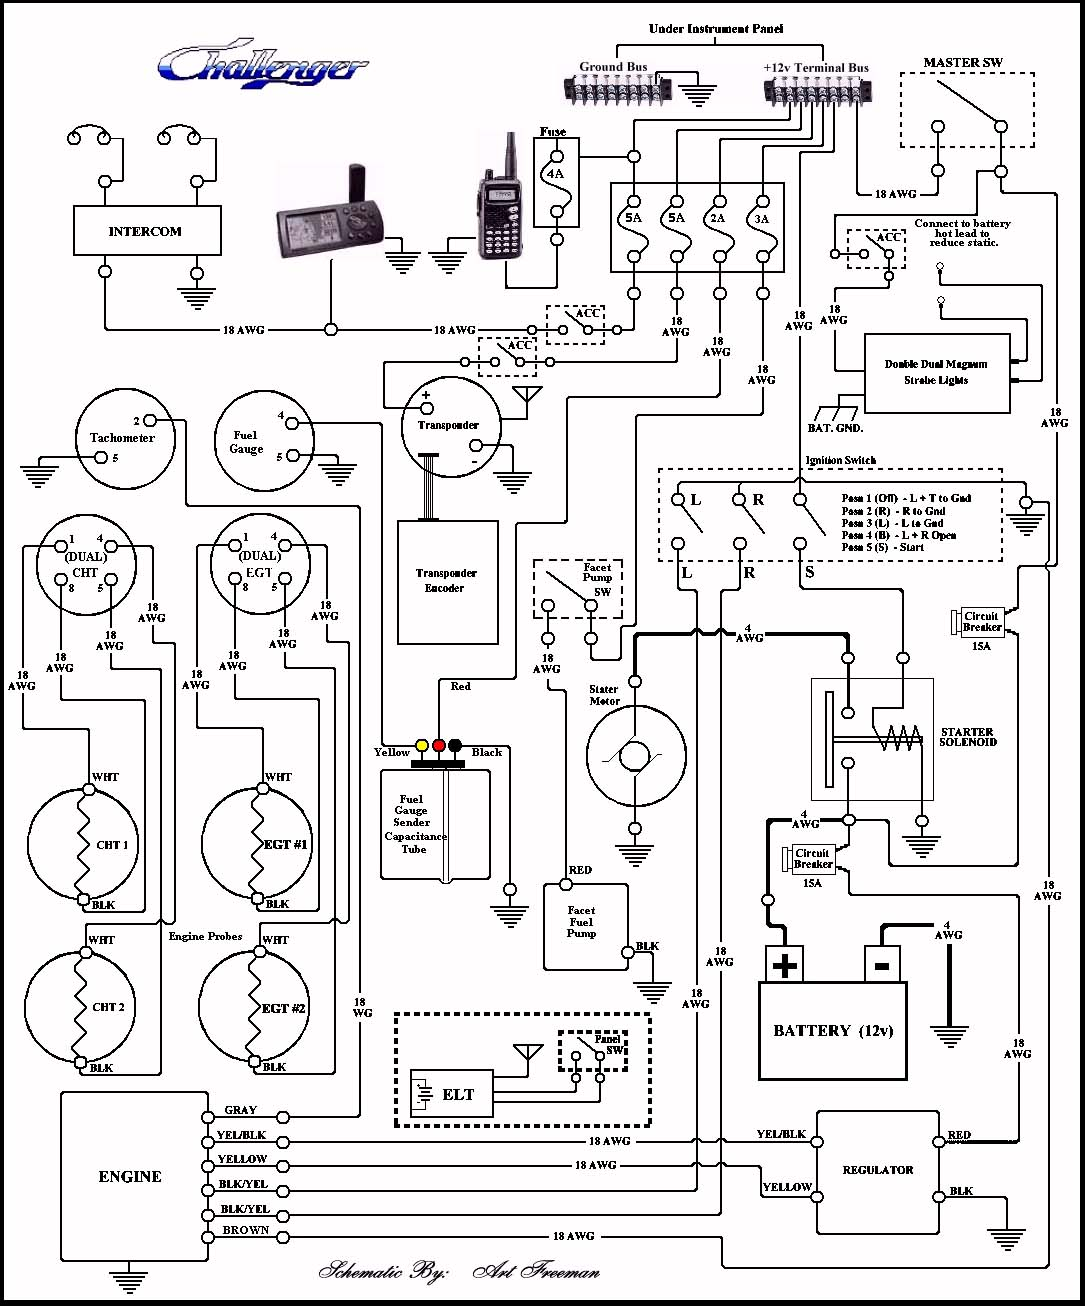 Rotax 447 wiring diagram diy wiring diagrams rotax 447 wiring diagram asfbconference2016 Choice Image